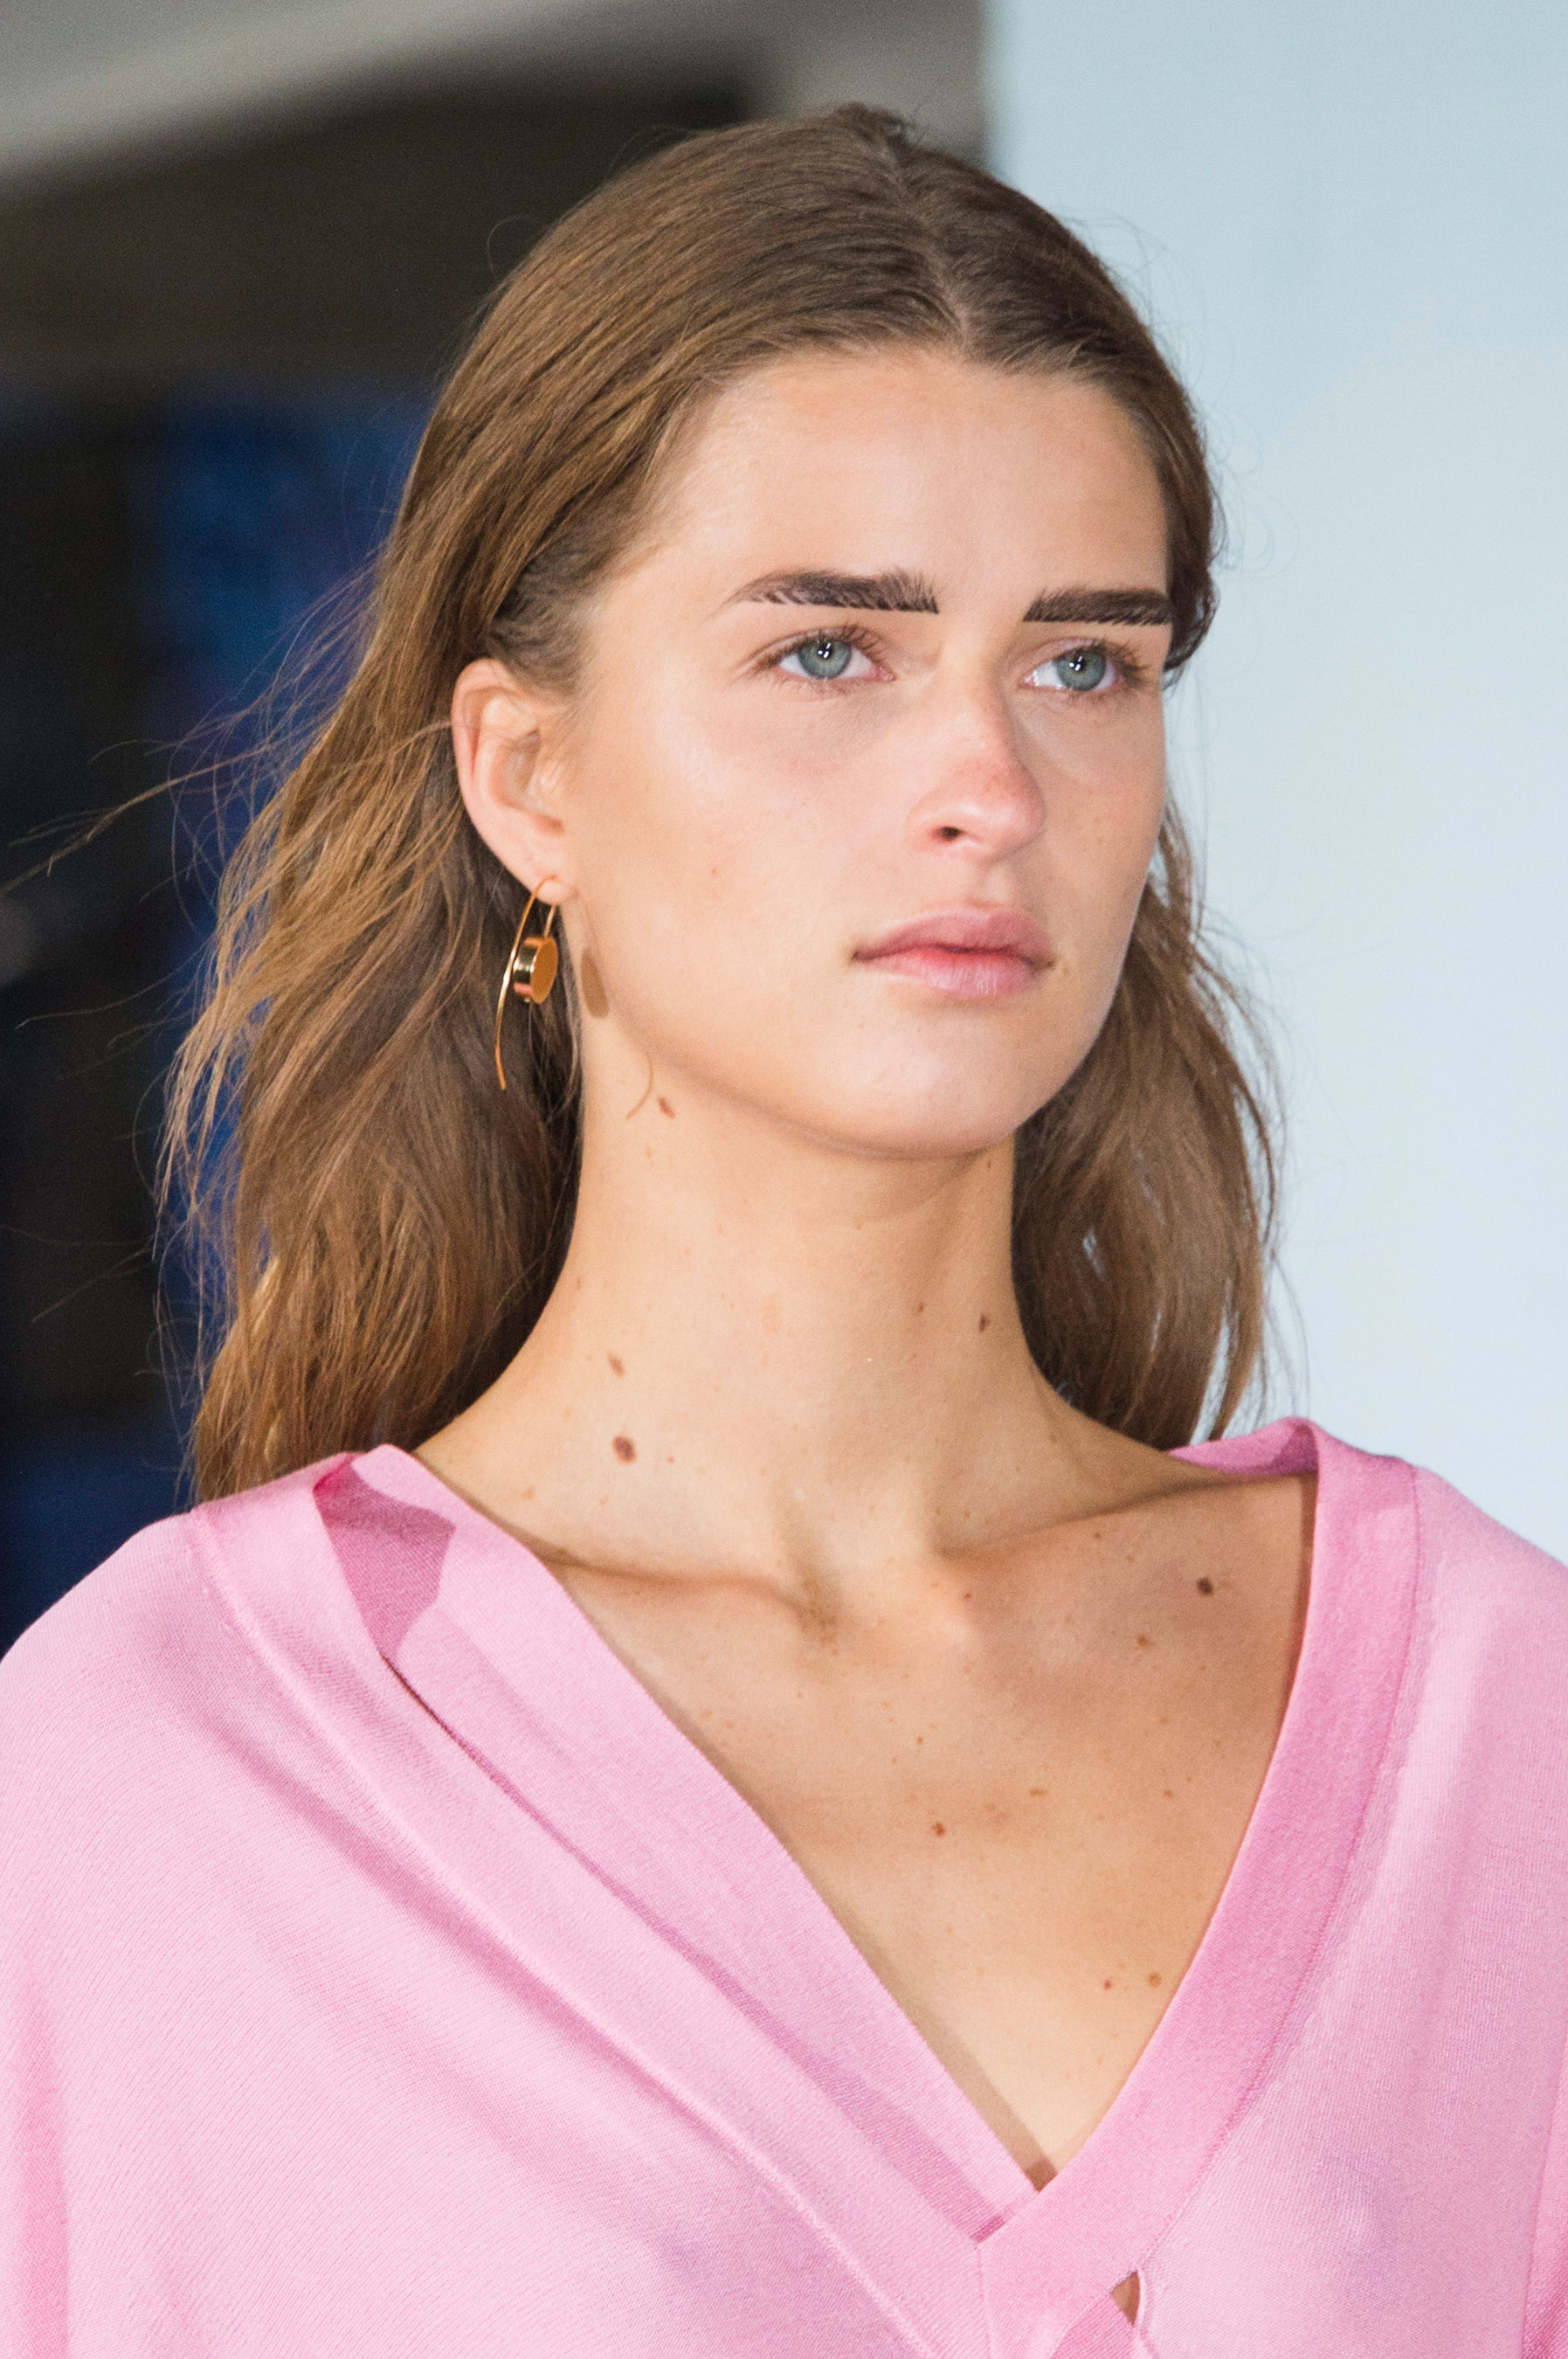 Cedric-charlier-spring-2016-runway-beauty-fashion-show-the-impression-11